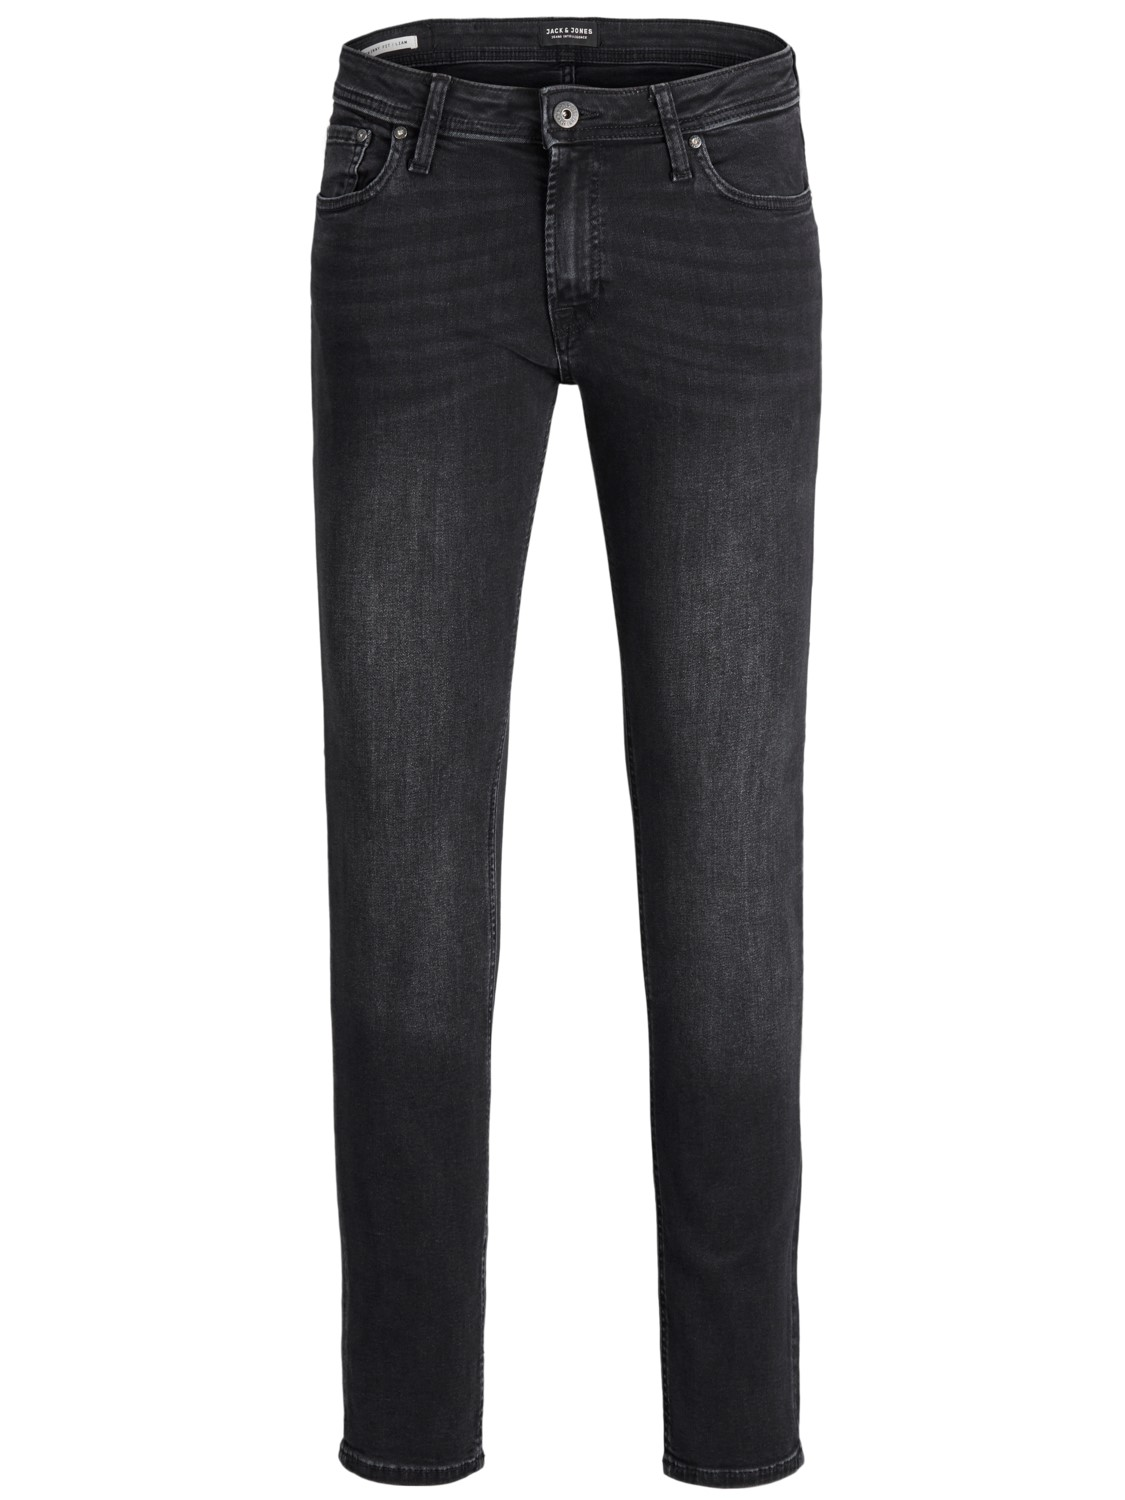 Jack   Jones Herren Jeans JJILIAM JJORIGINAL AM 746 50SPS - Schwarz - Black  Denim 0c5d0f4150